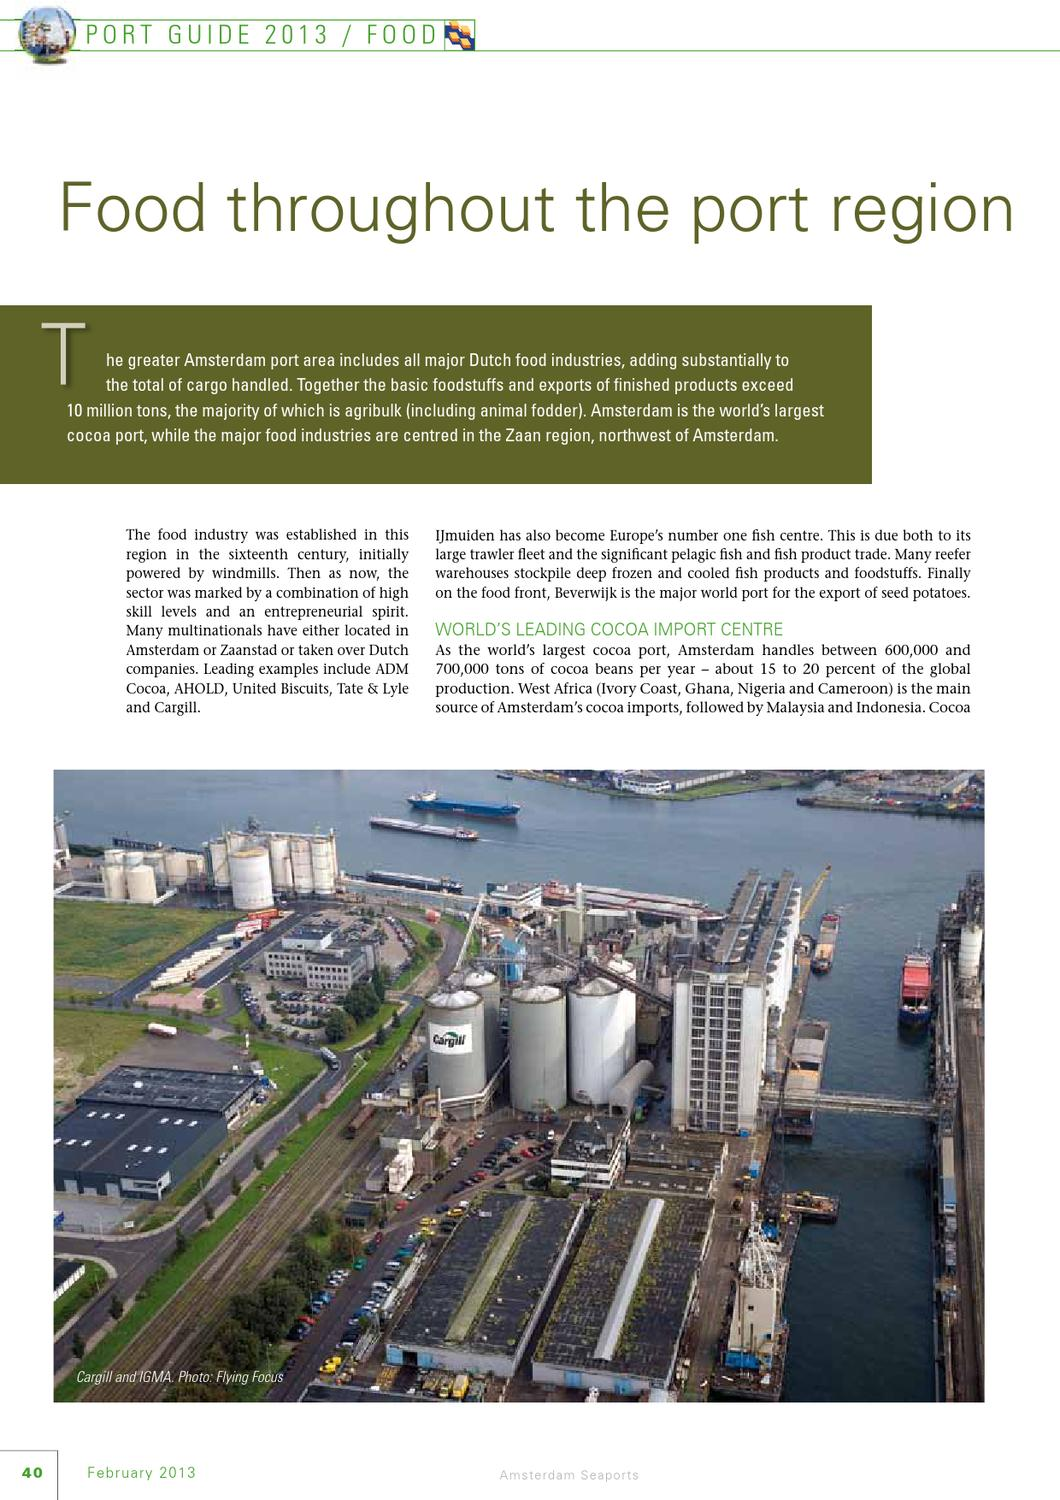 Port Guide 2013 by Amports - issuu